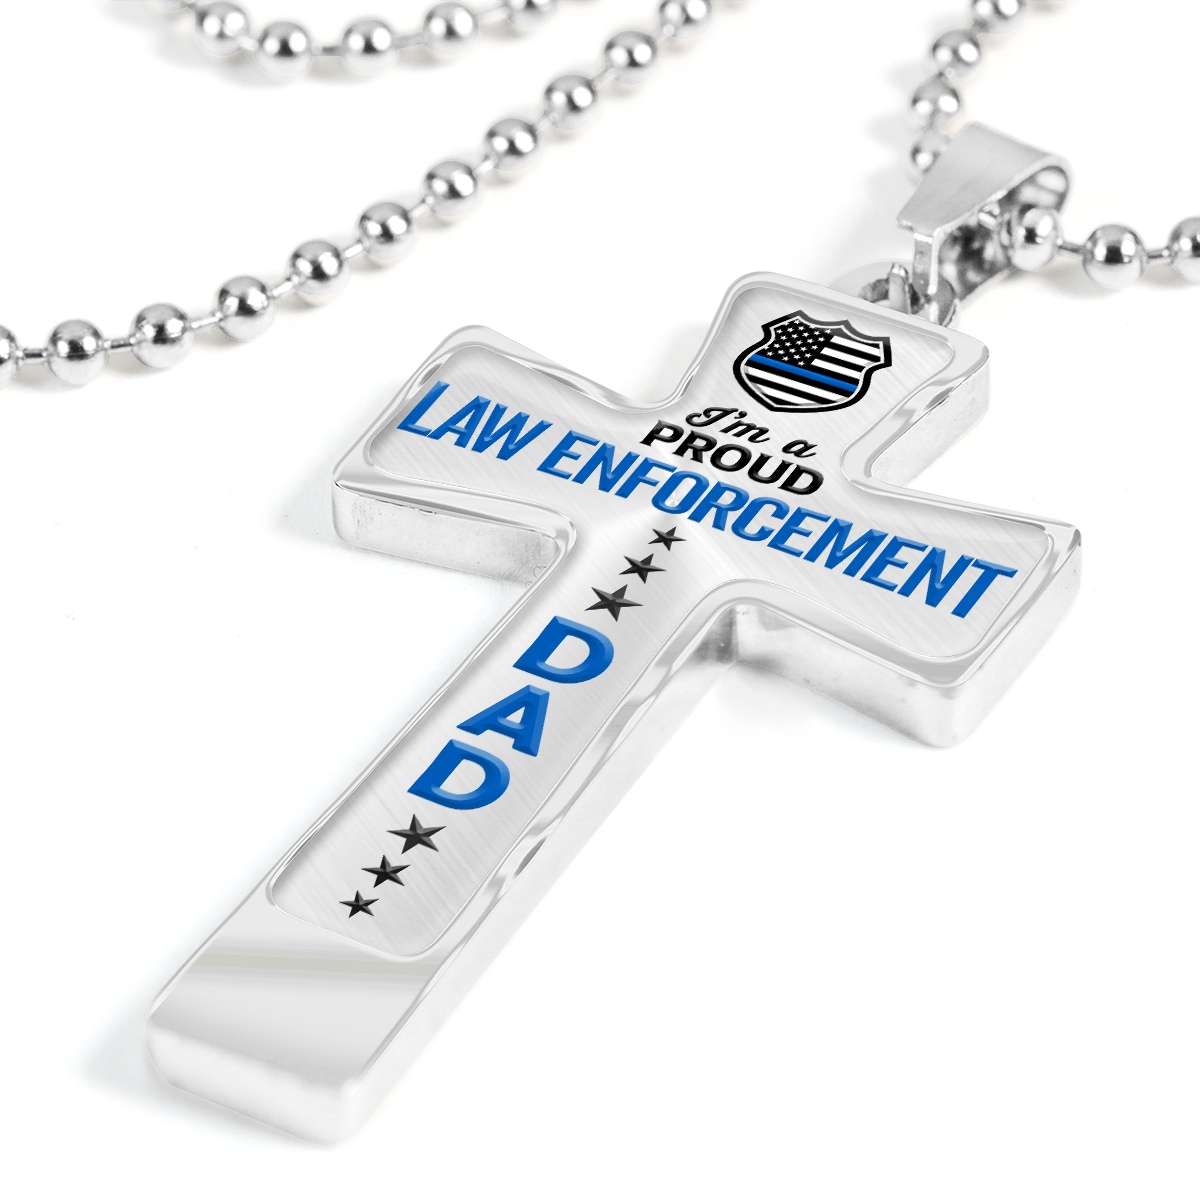 Proud Law Enforcement Dad Cross Necklace | Heroic Defender